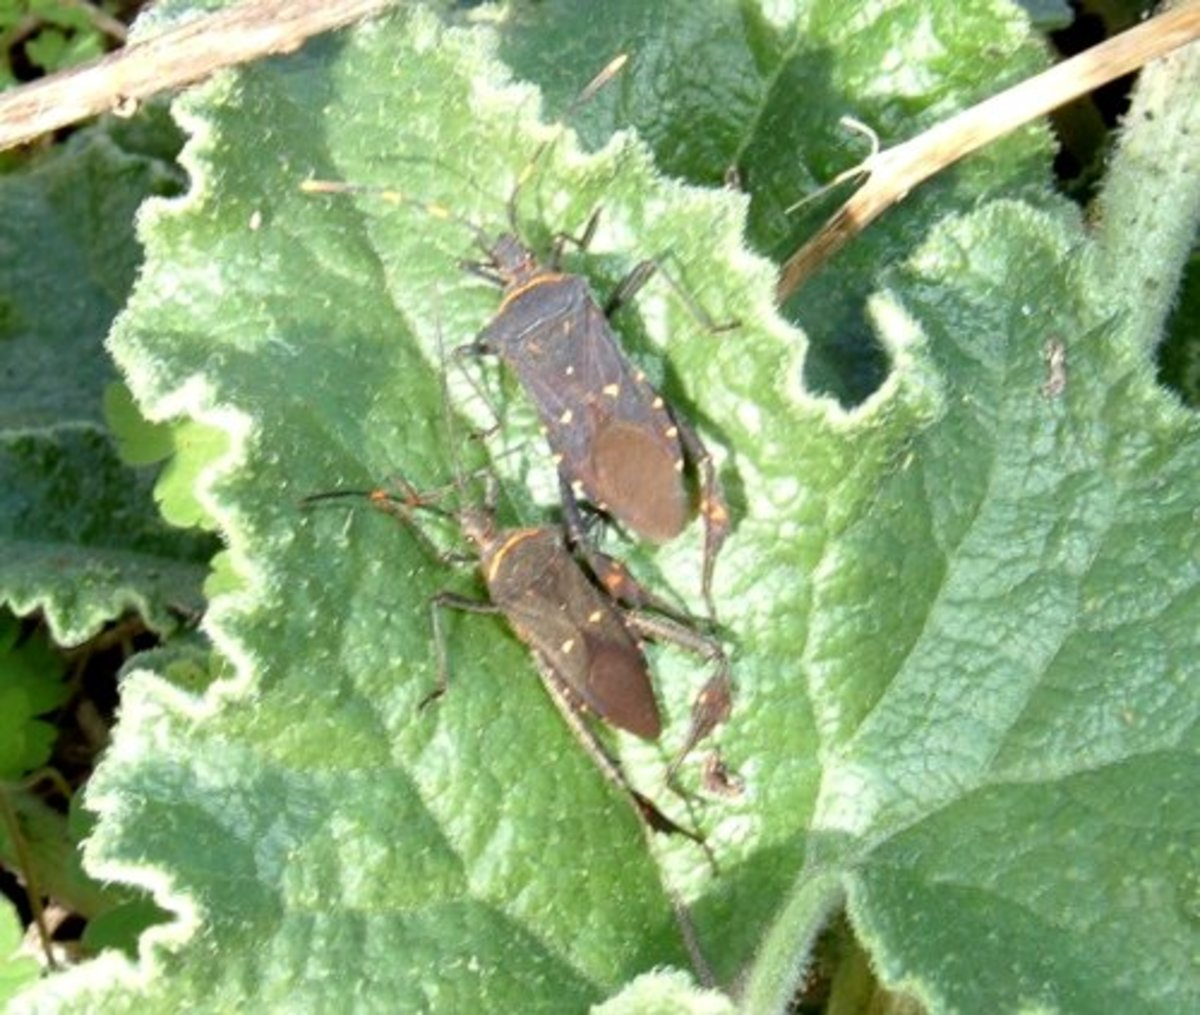 Leaf-legged Bugs